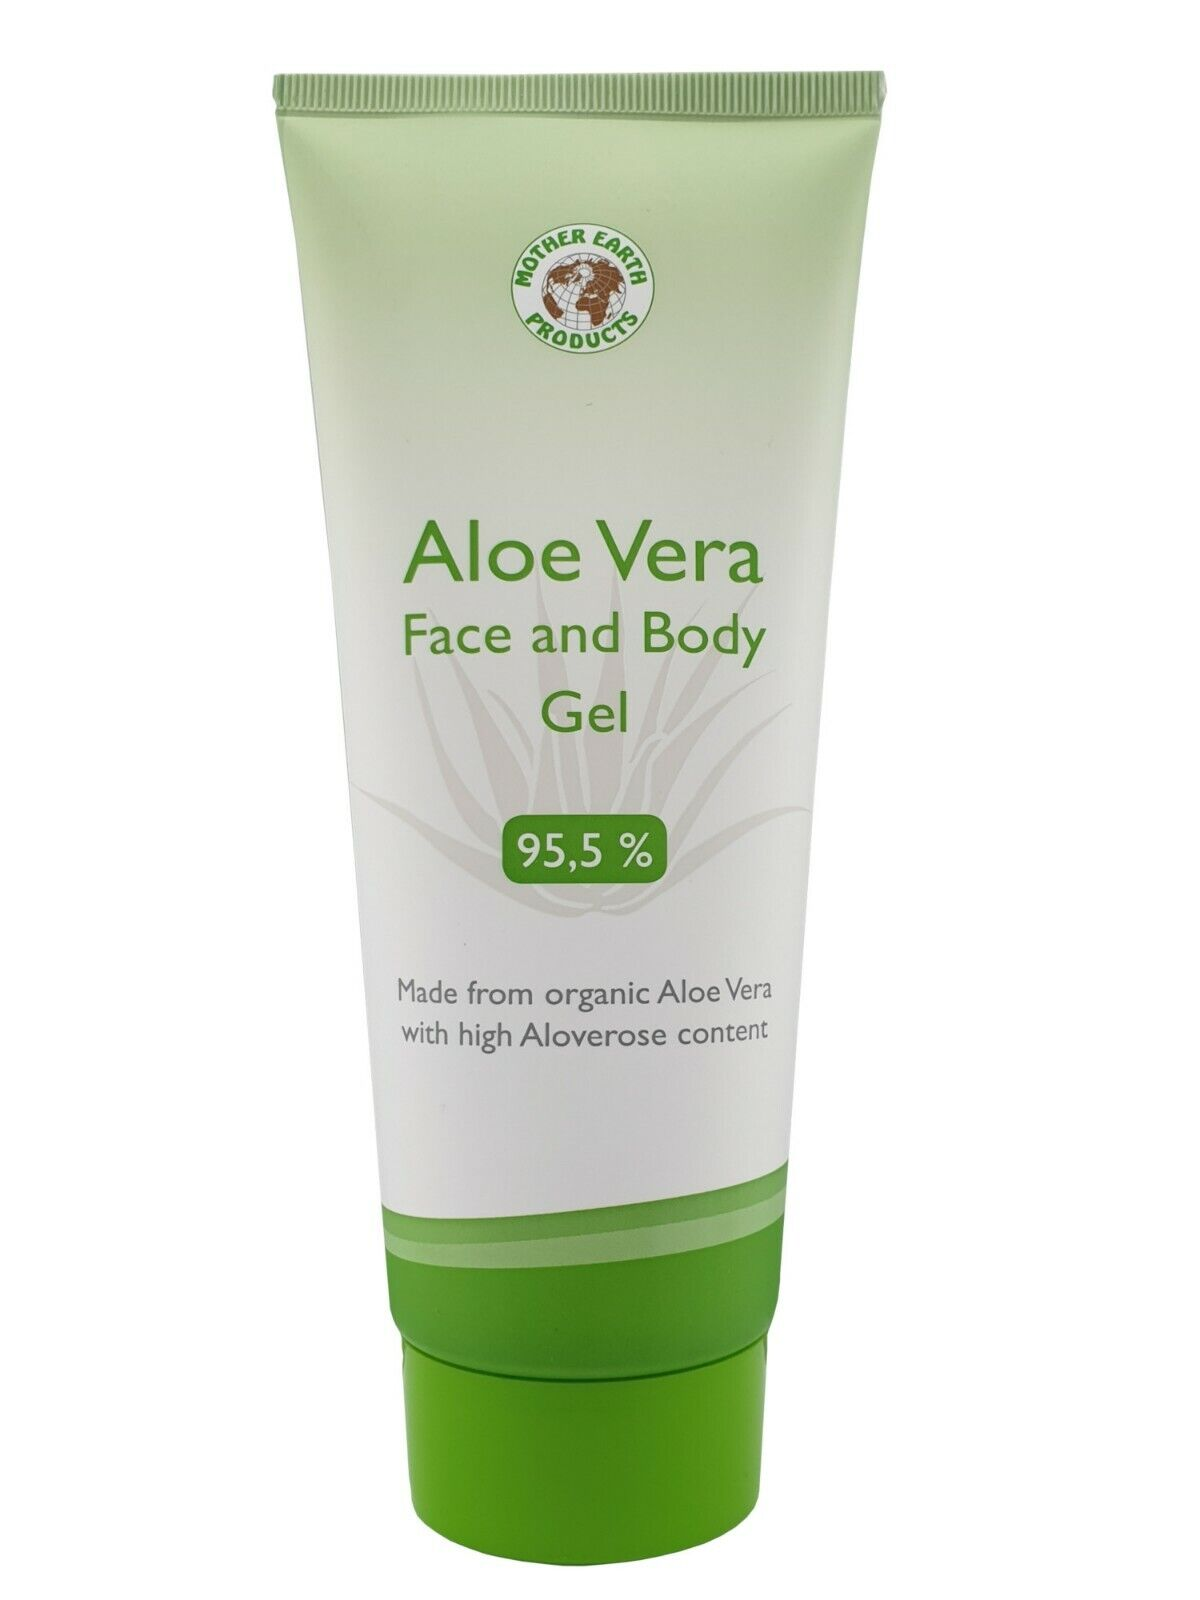 Aloe Vera Gel aus 95,5 % Aloe Vera Bio Gel/Saft, handfiletiert, 200 ml Tube